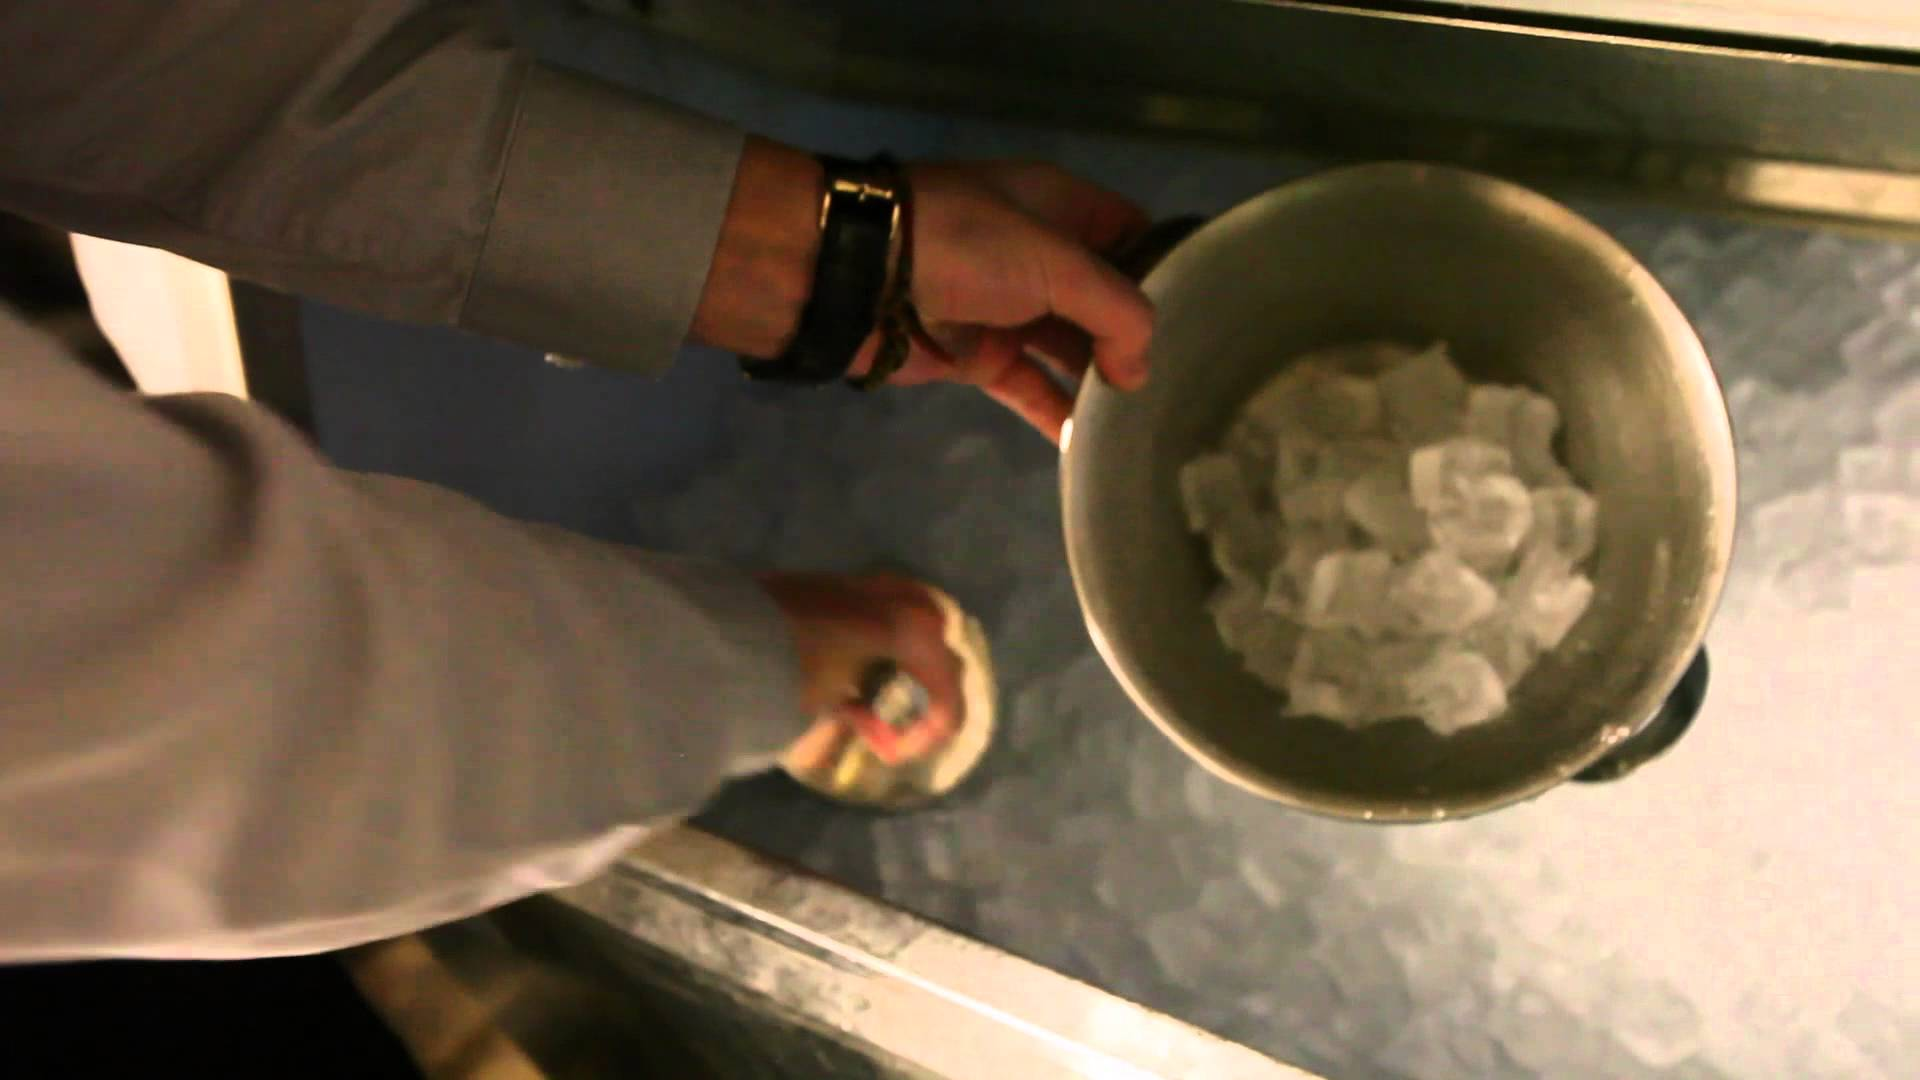 Scotsman Ice Machine at The Hoste, Burnham Market, Norfolk